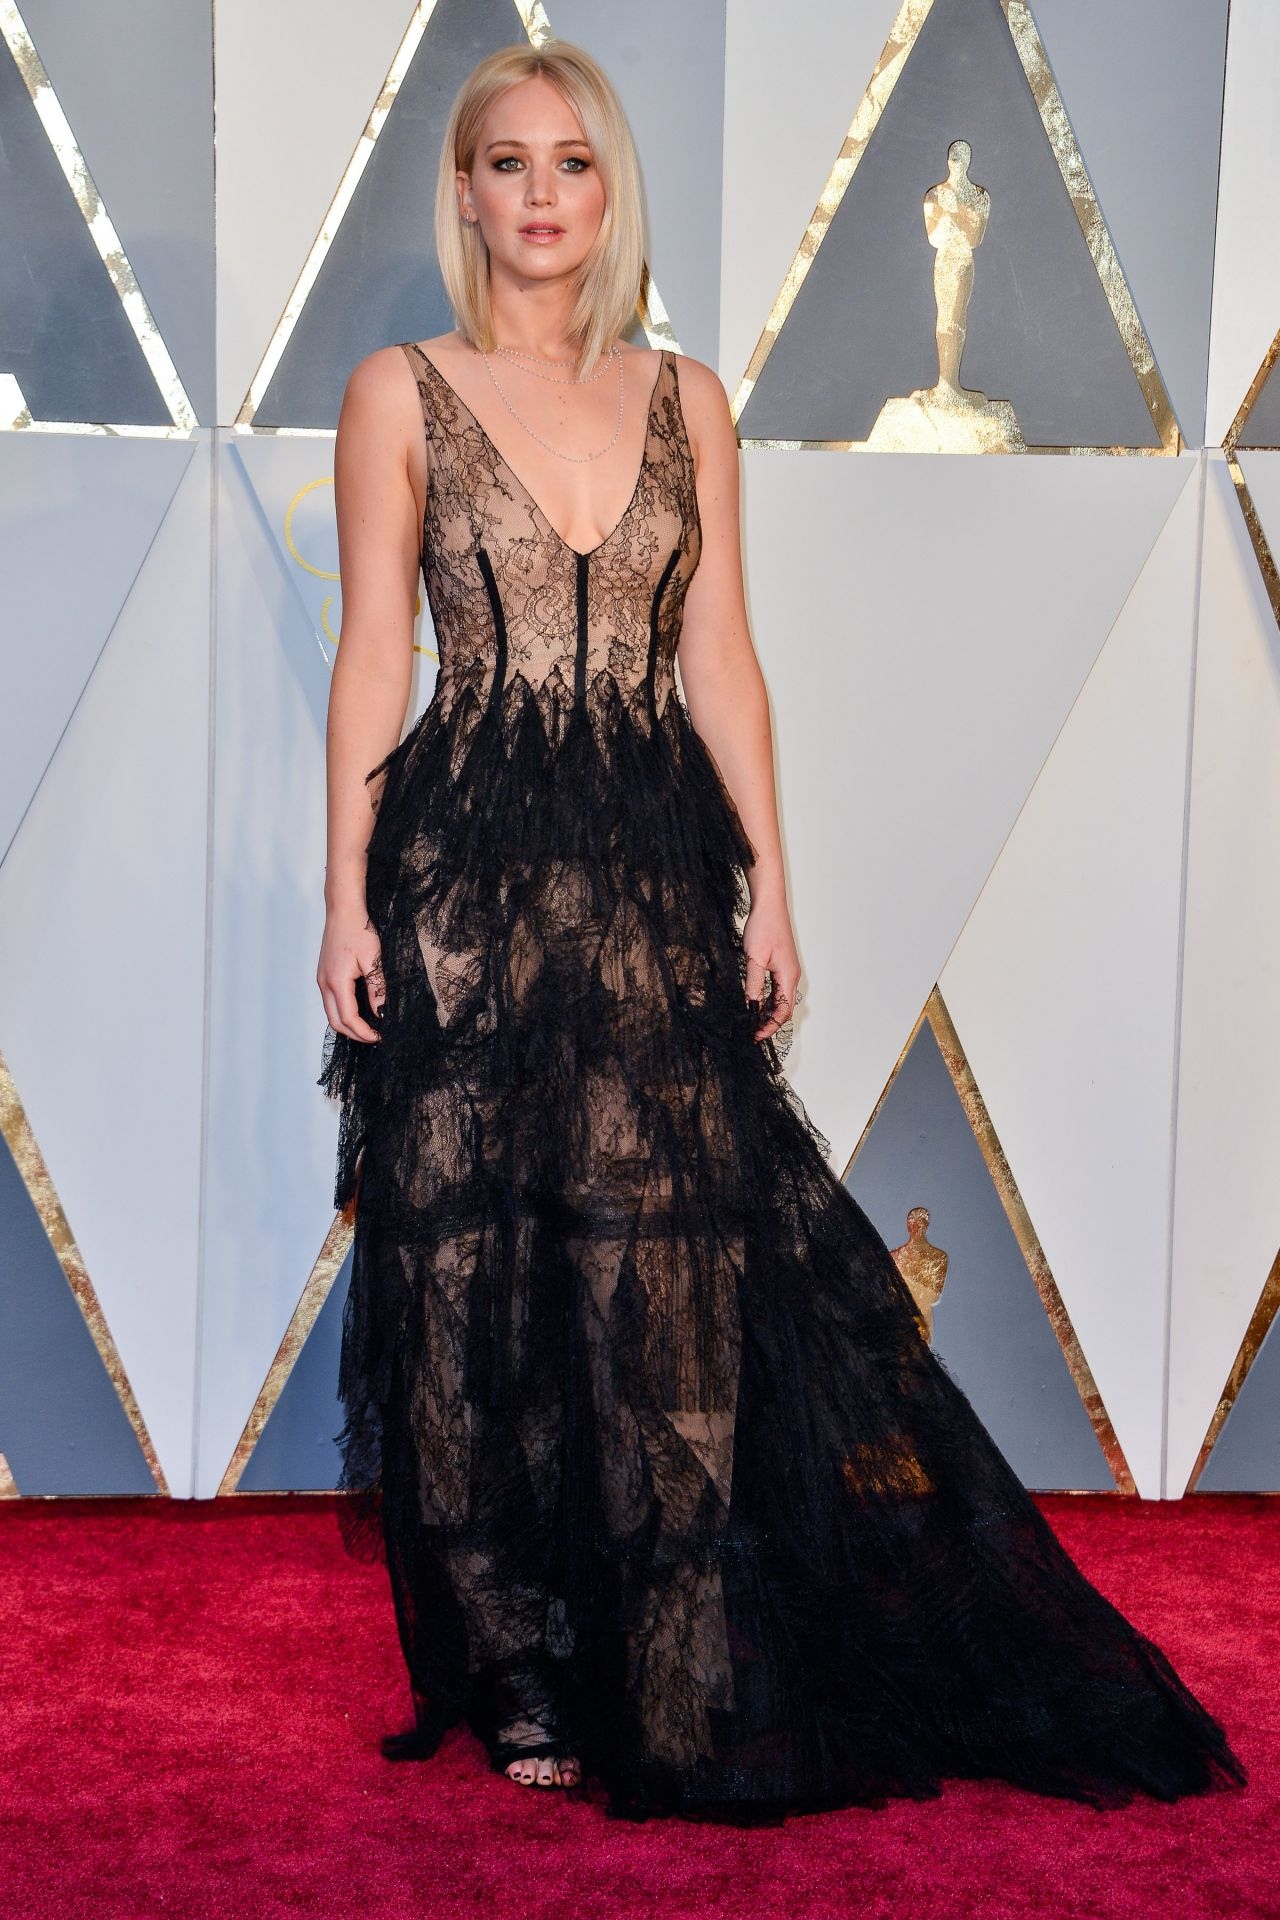 jennifer-lawrence-oscars-2016-in-hollywood-ca-2-28-2016-17